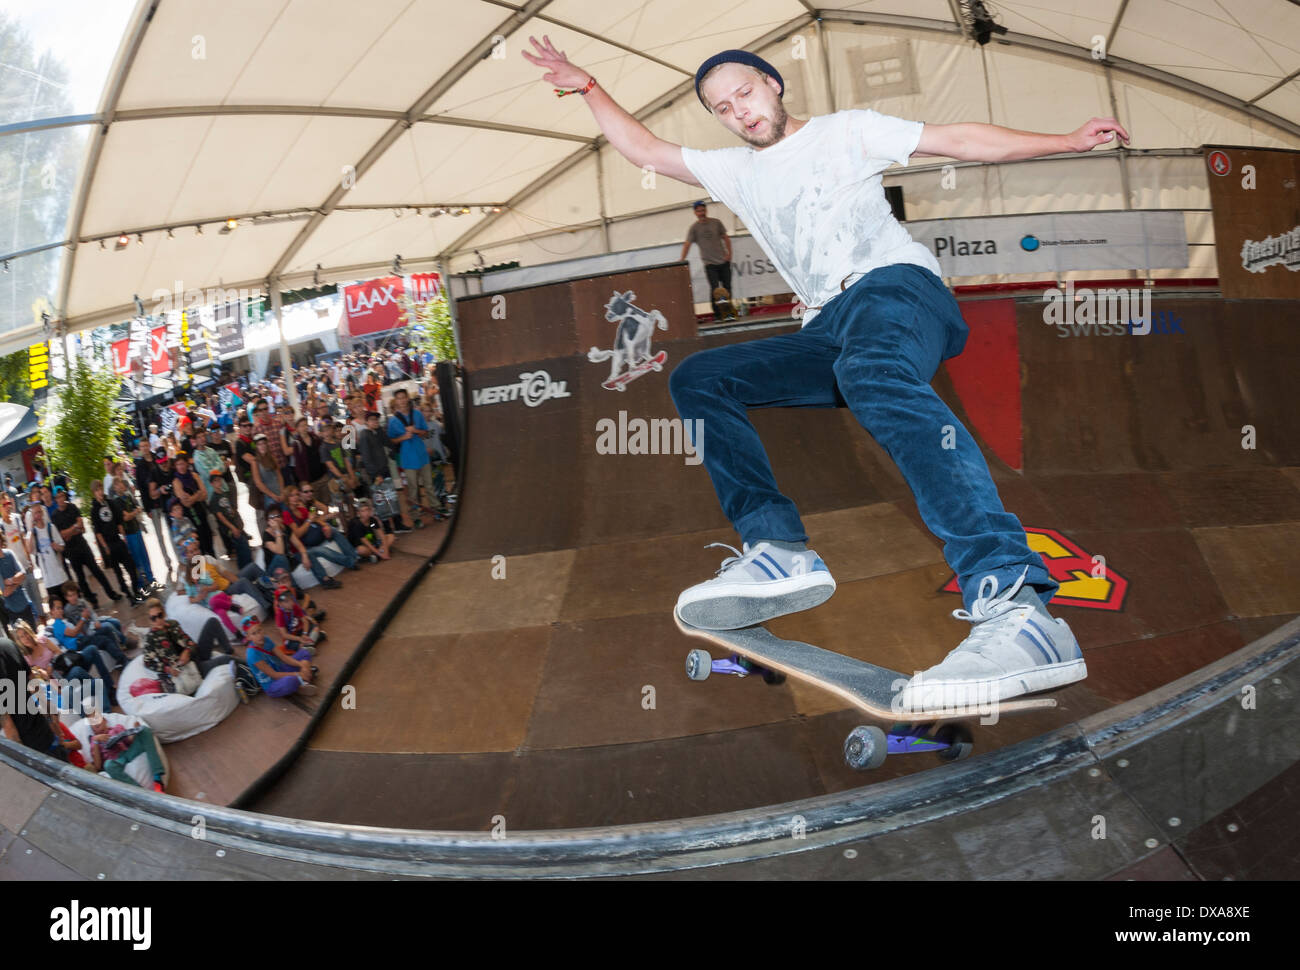 Skateboarder in the halfpipe at the 2013 freestyle.ch event in Zurich, Switzerland. - Stock Image